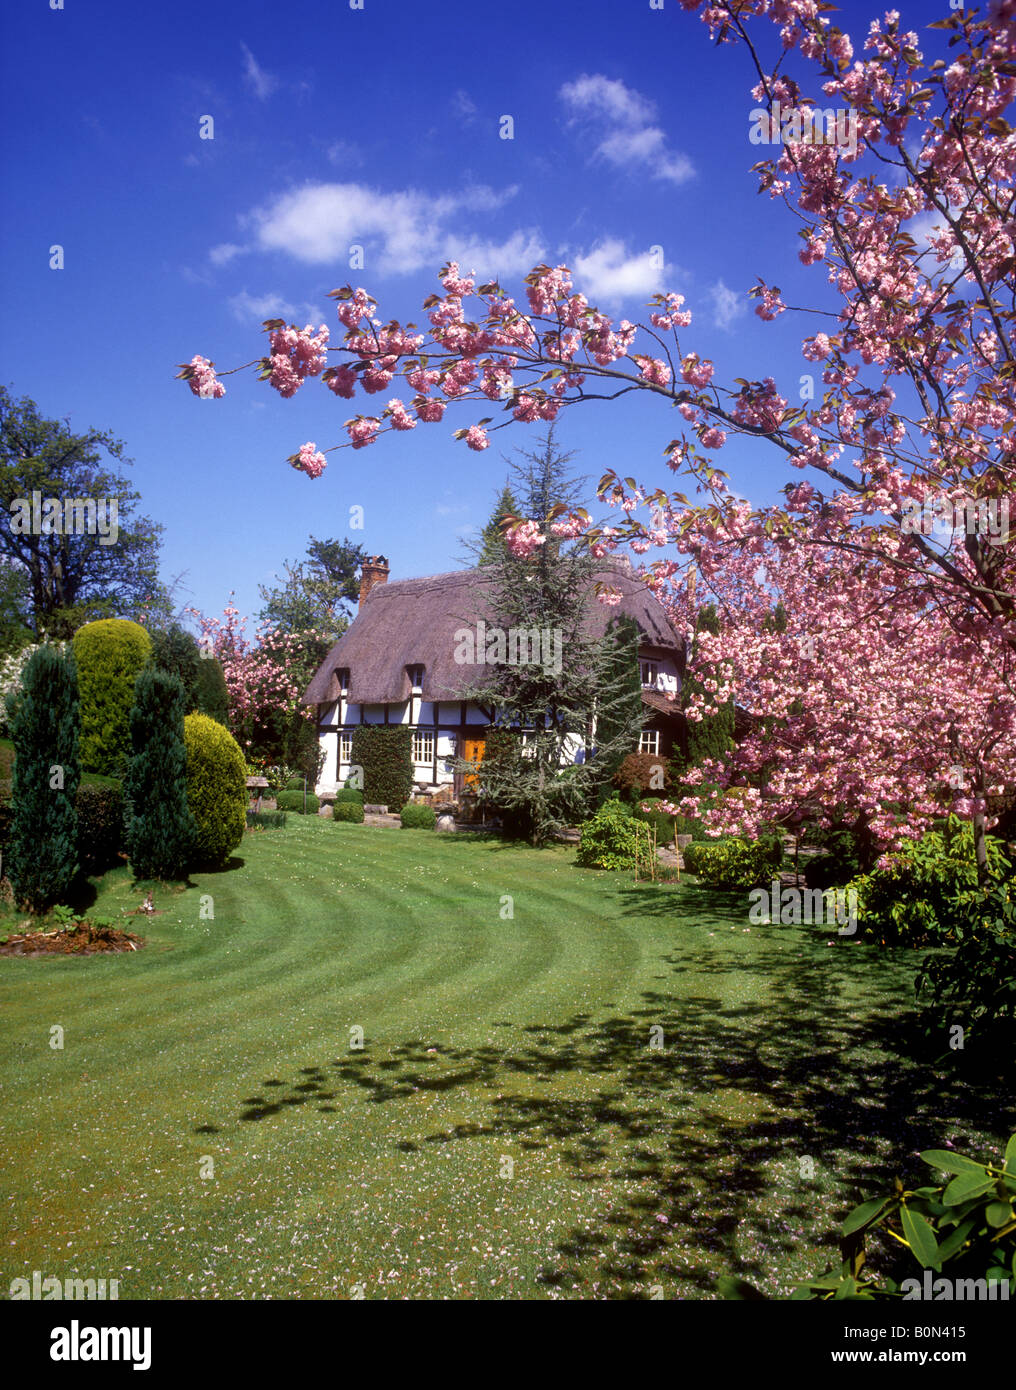 Cottage at springtime in the New Forest village of New Forest - Stock Image